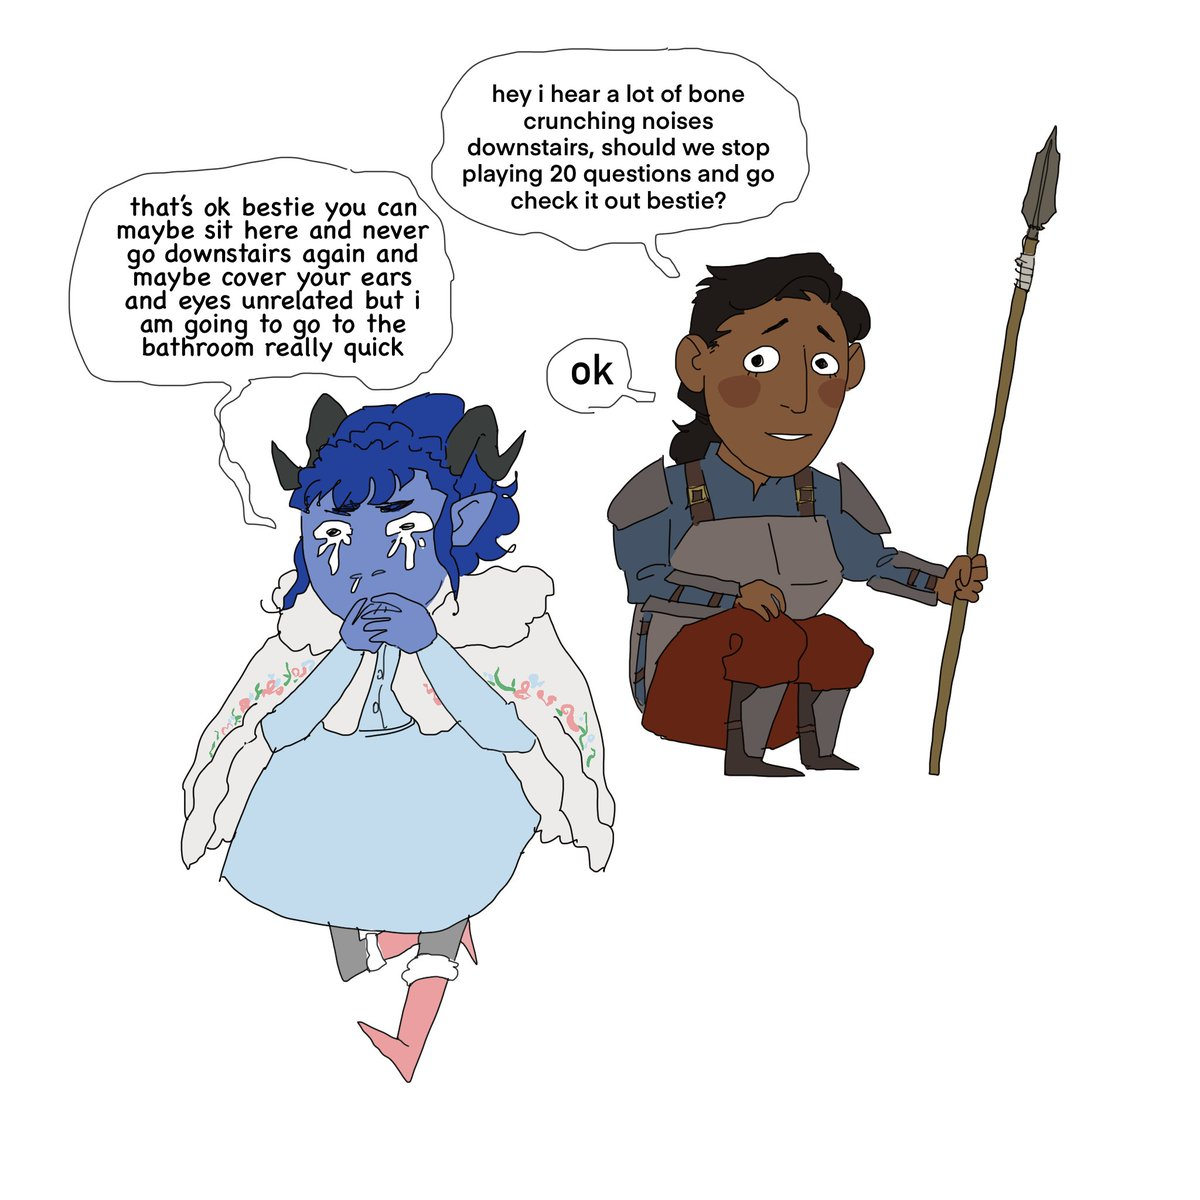 Replying to @Lemonbrows: wow i cant believe nothing bad happened while cymie was upstairs #CriticalRole #CriticalRoleFanart